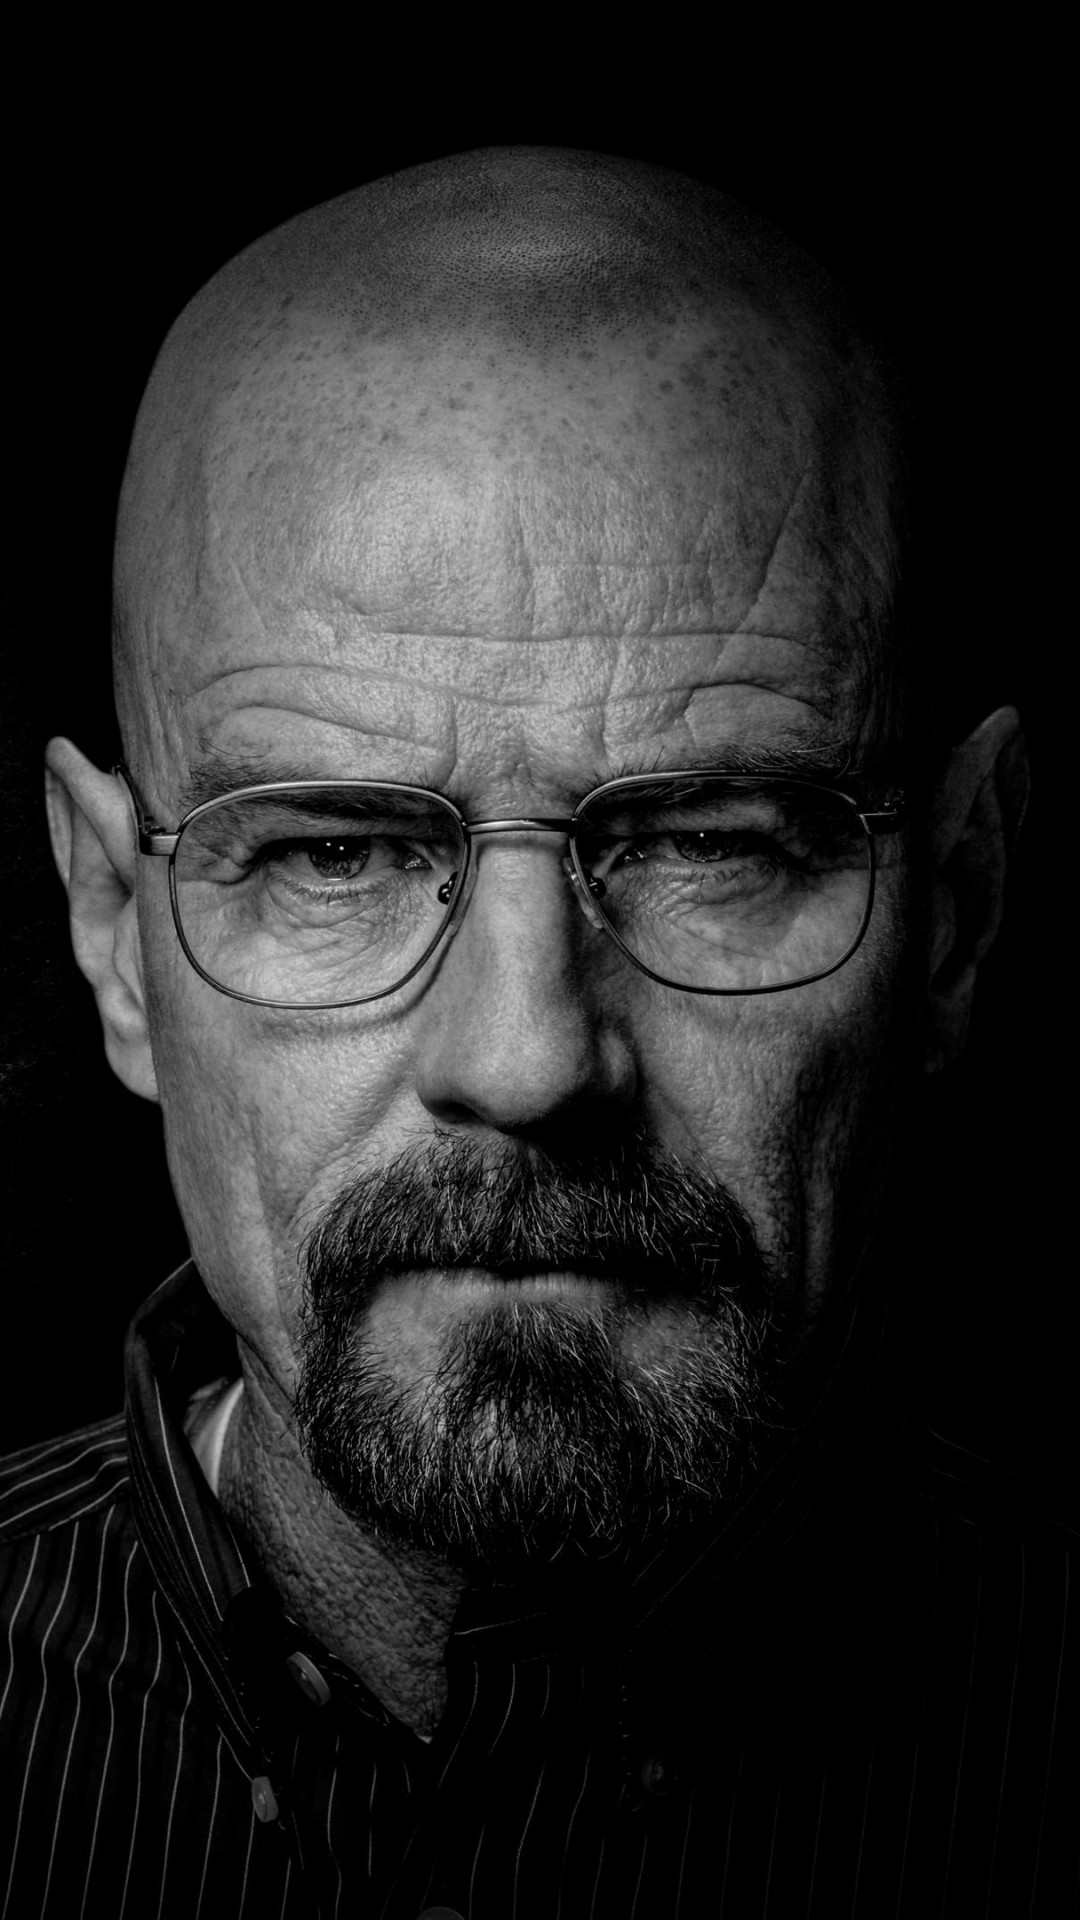 Breaking Bad - Walter White - Black & White Wallpaper for SAMSUNG Galaxy Note 3